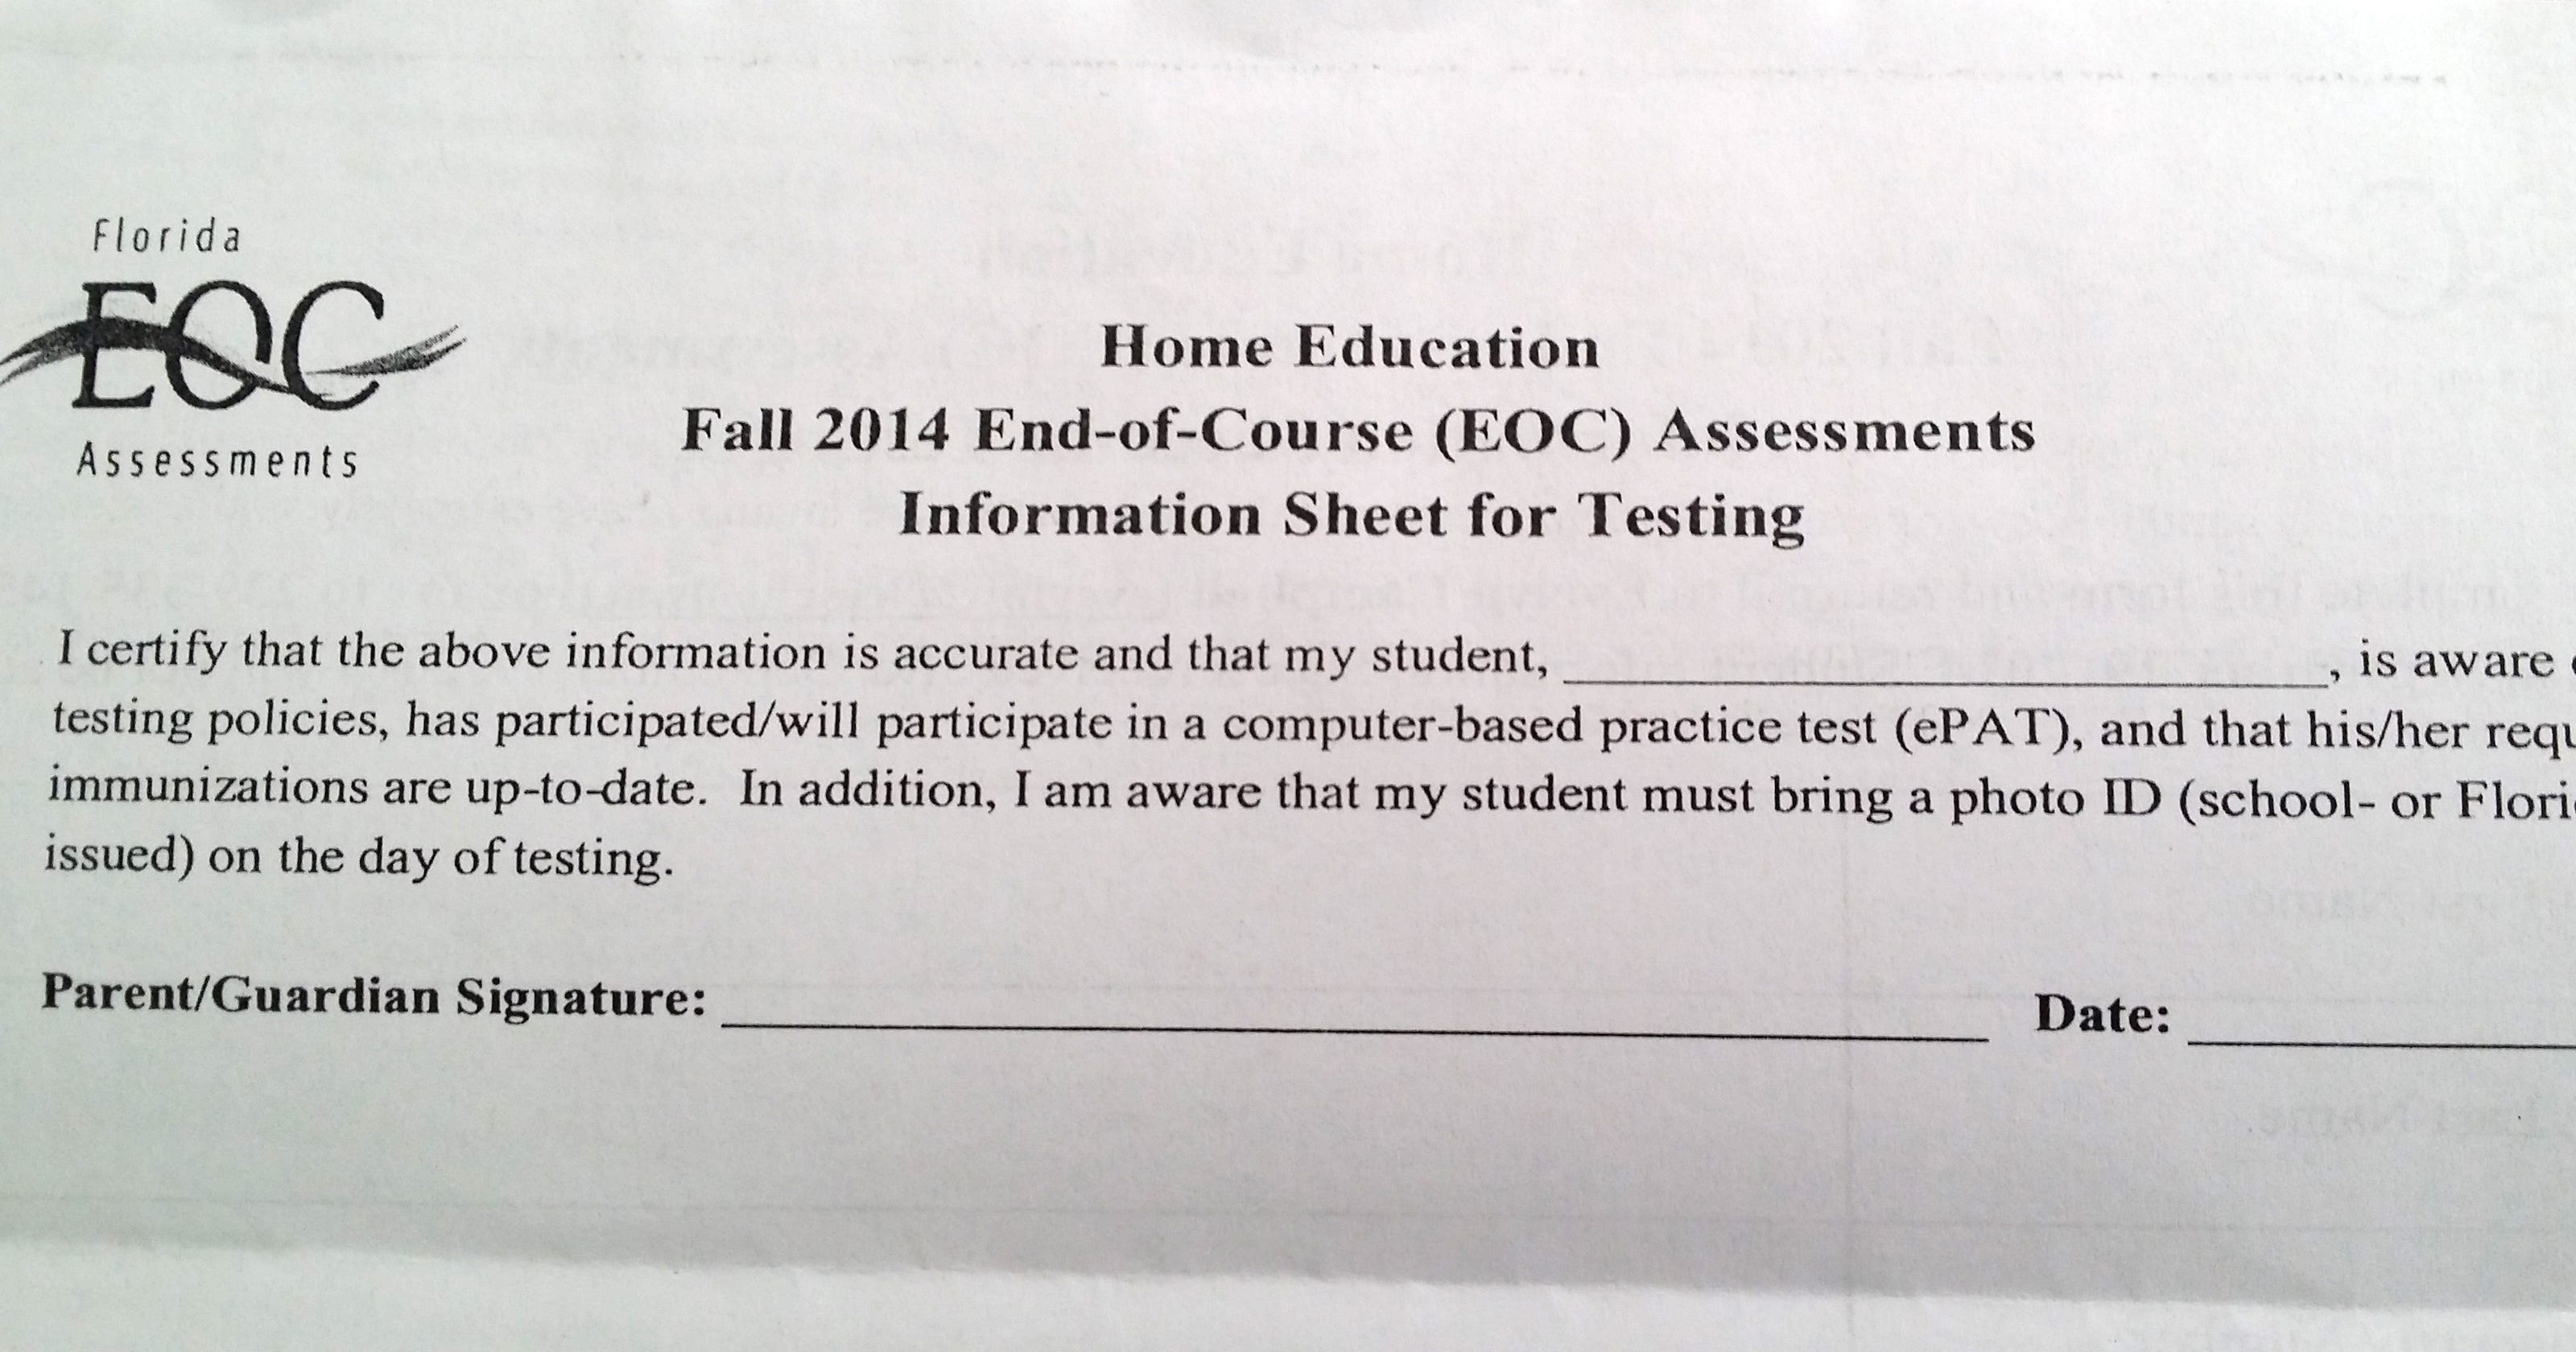 Confusion in wake of 'misleading' homeschool exam letter